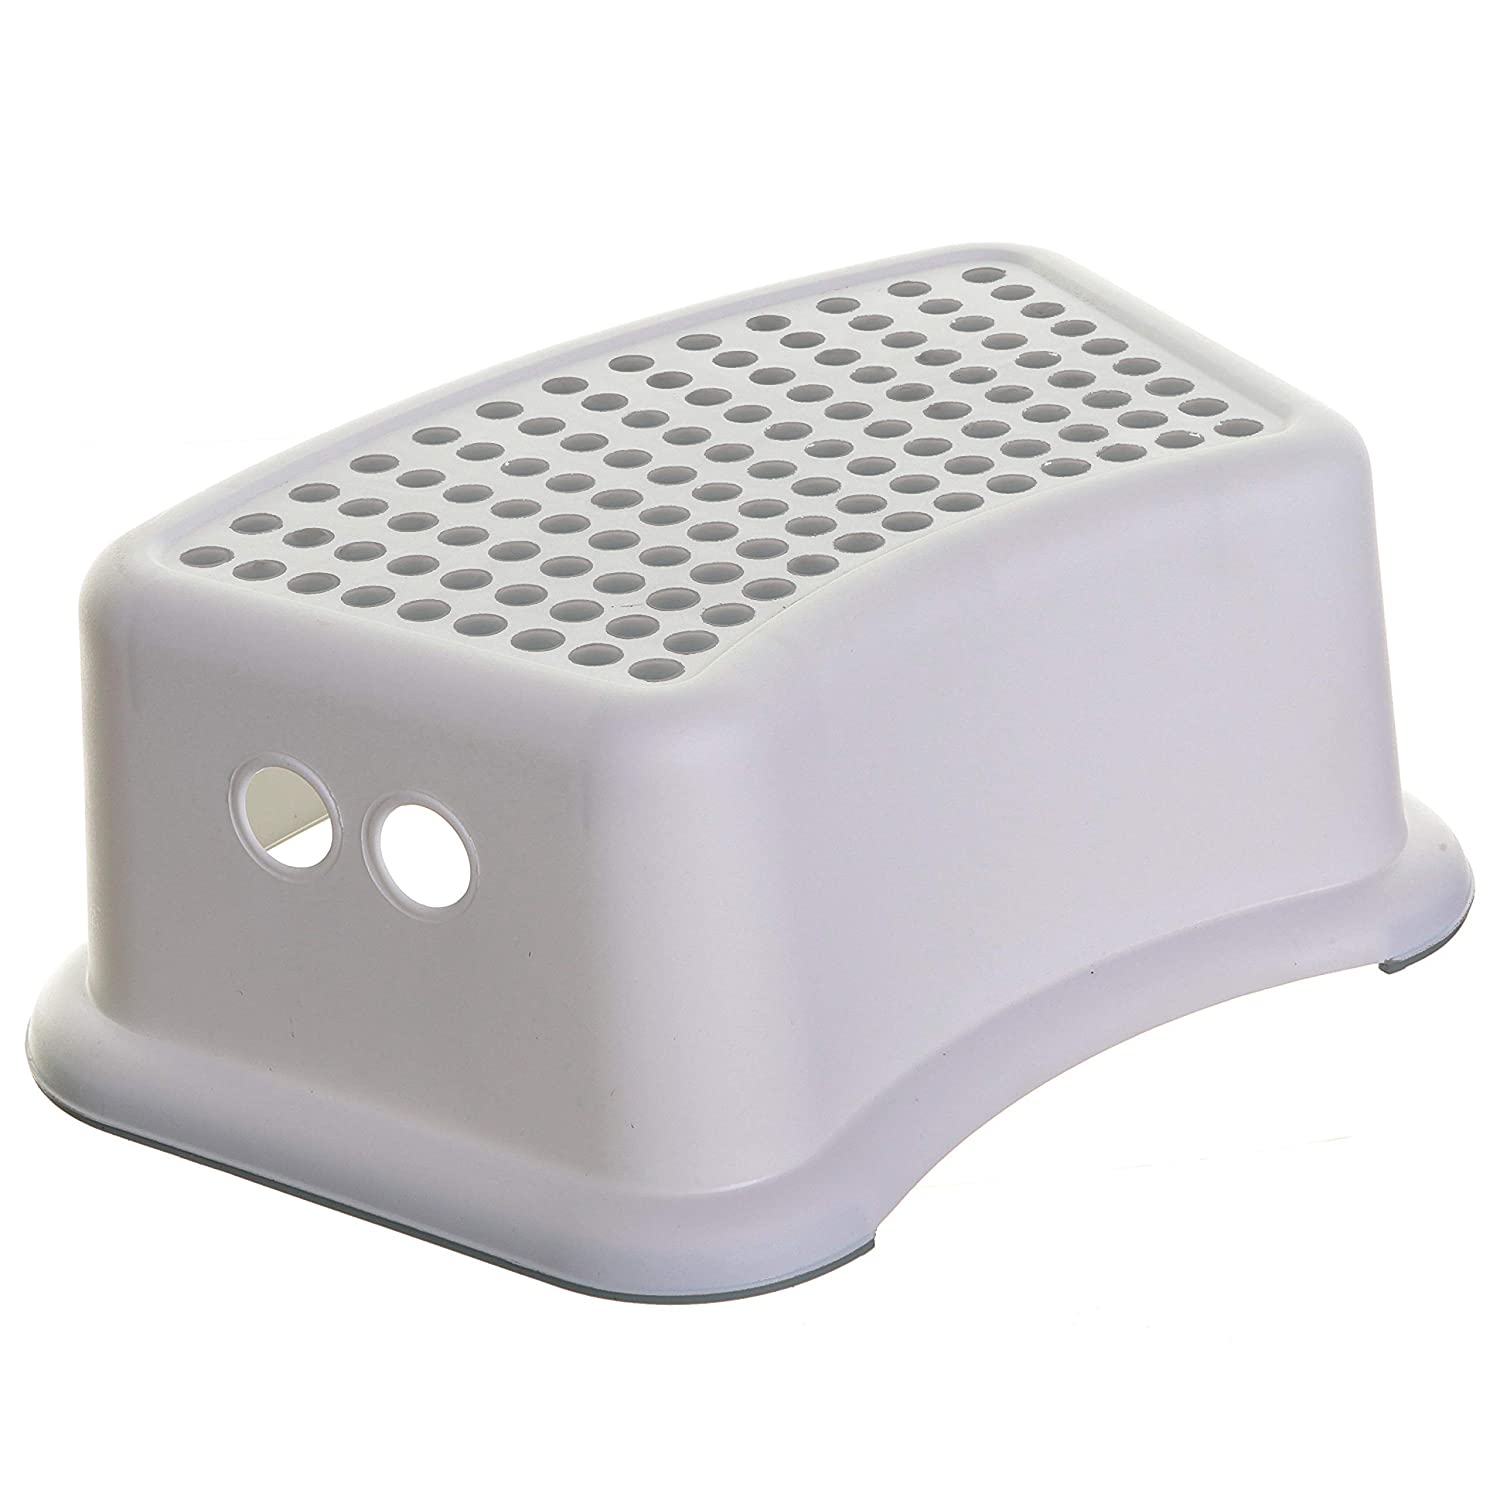 Dreambaby Step Stool Grey Dots, Toddler Potty Training Aid with Non Slip Base - Model L673 : Baby